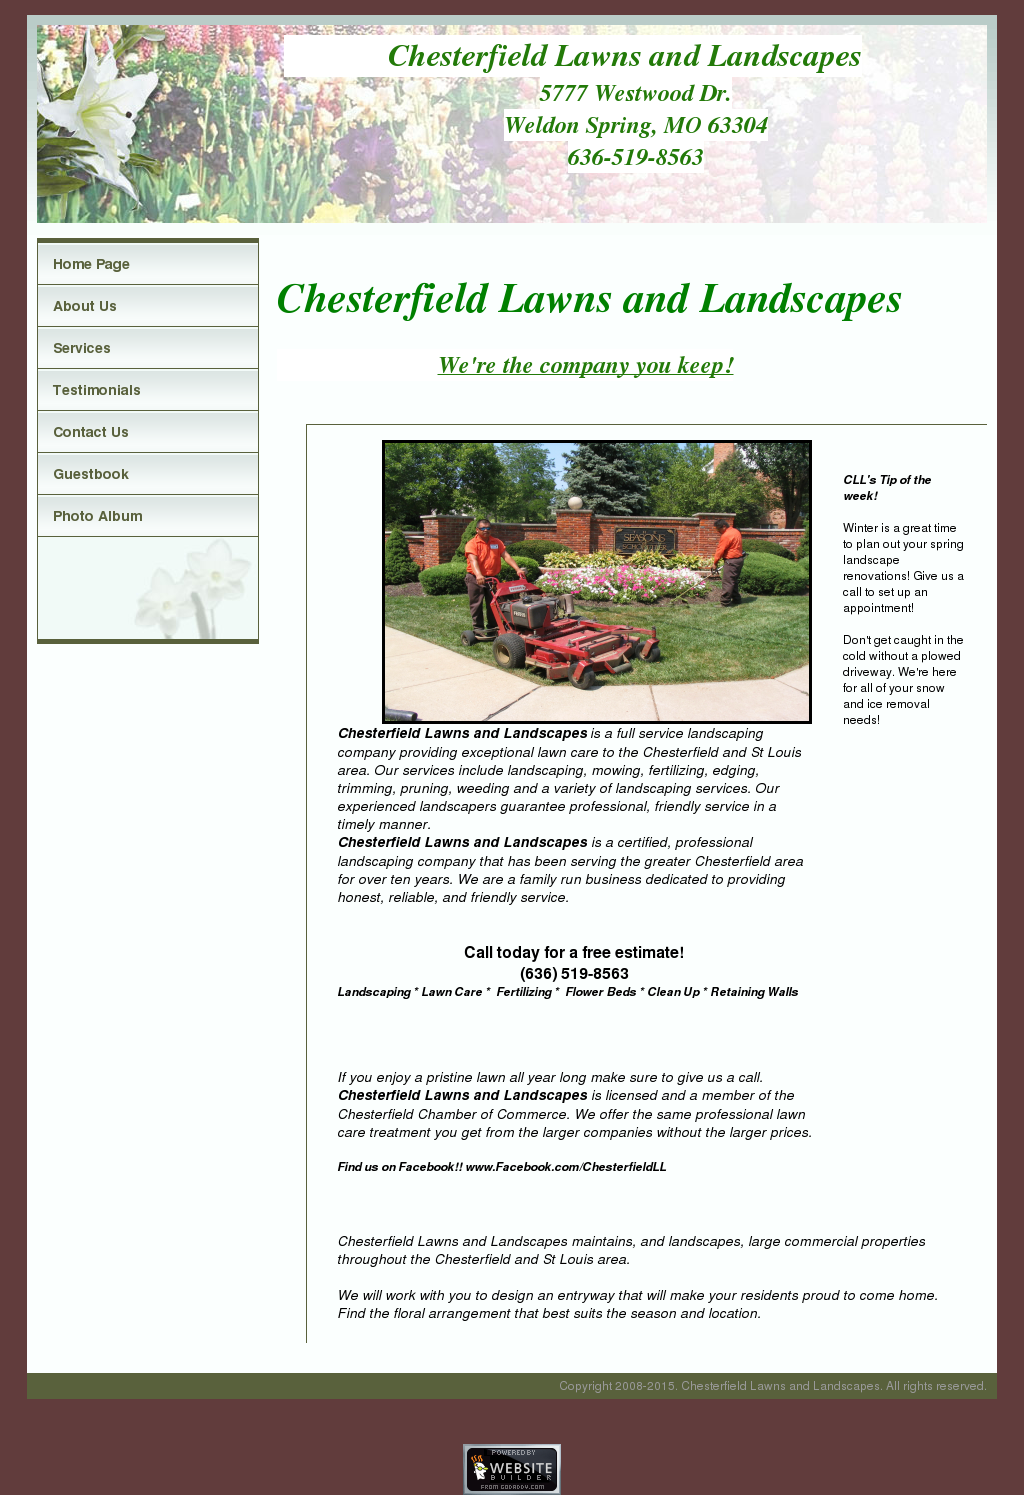 Chesterfield Lawns And Landscapes Compeors Revenue